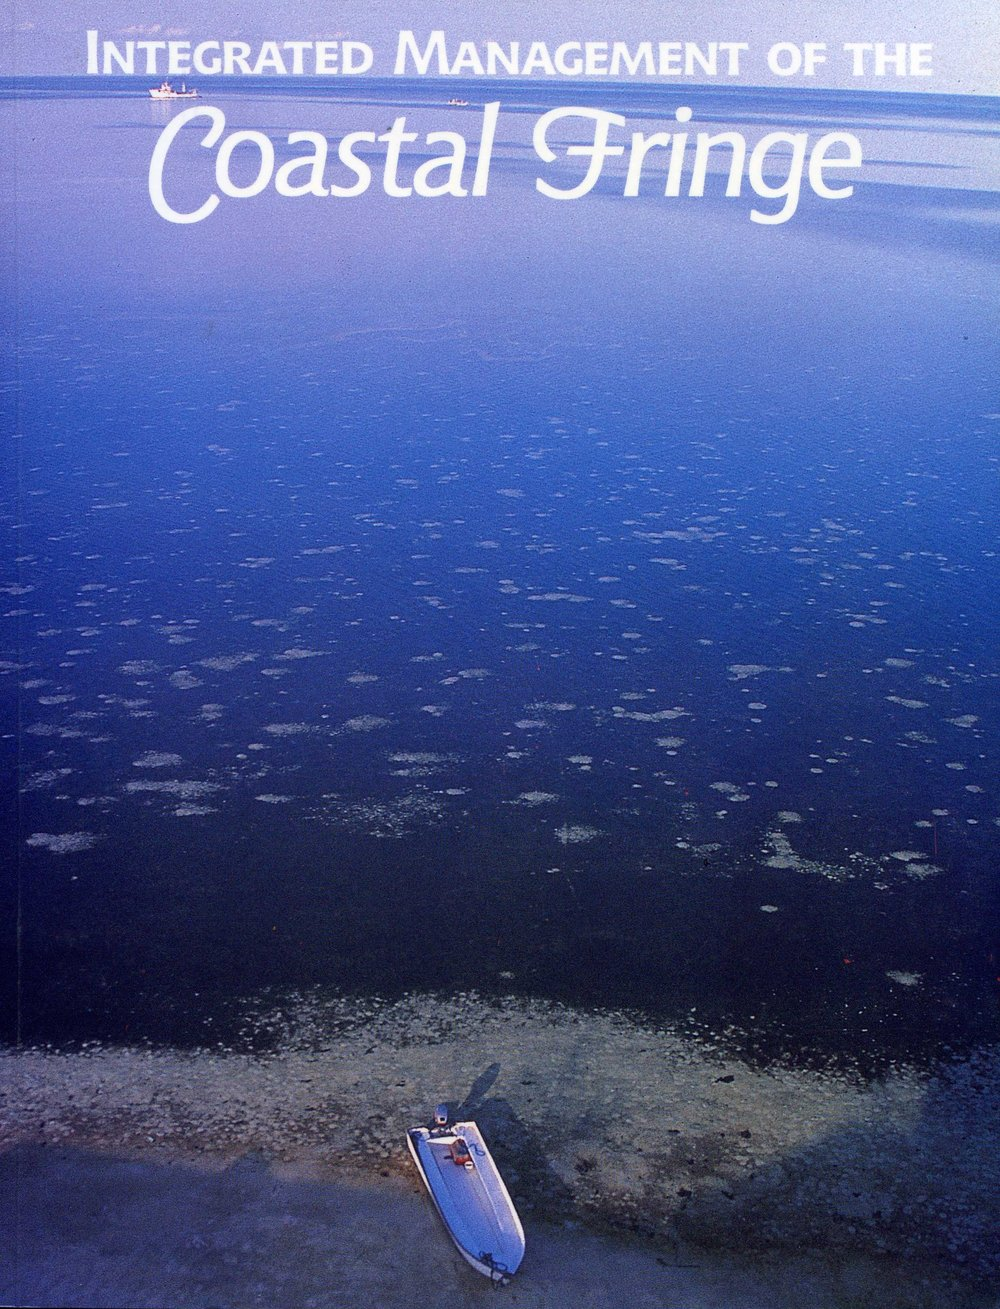 Editor  VSO and PCSDS (1998)  Integrated Management of the Coastal Fringe. Conference Proceedings.  VSO and Palawan Council for Sustainable Development Staff: Philippines.